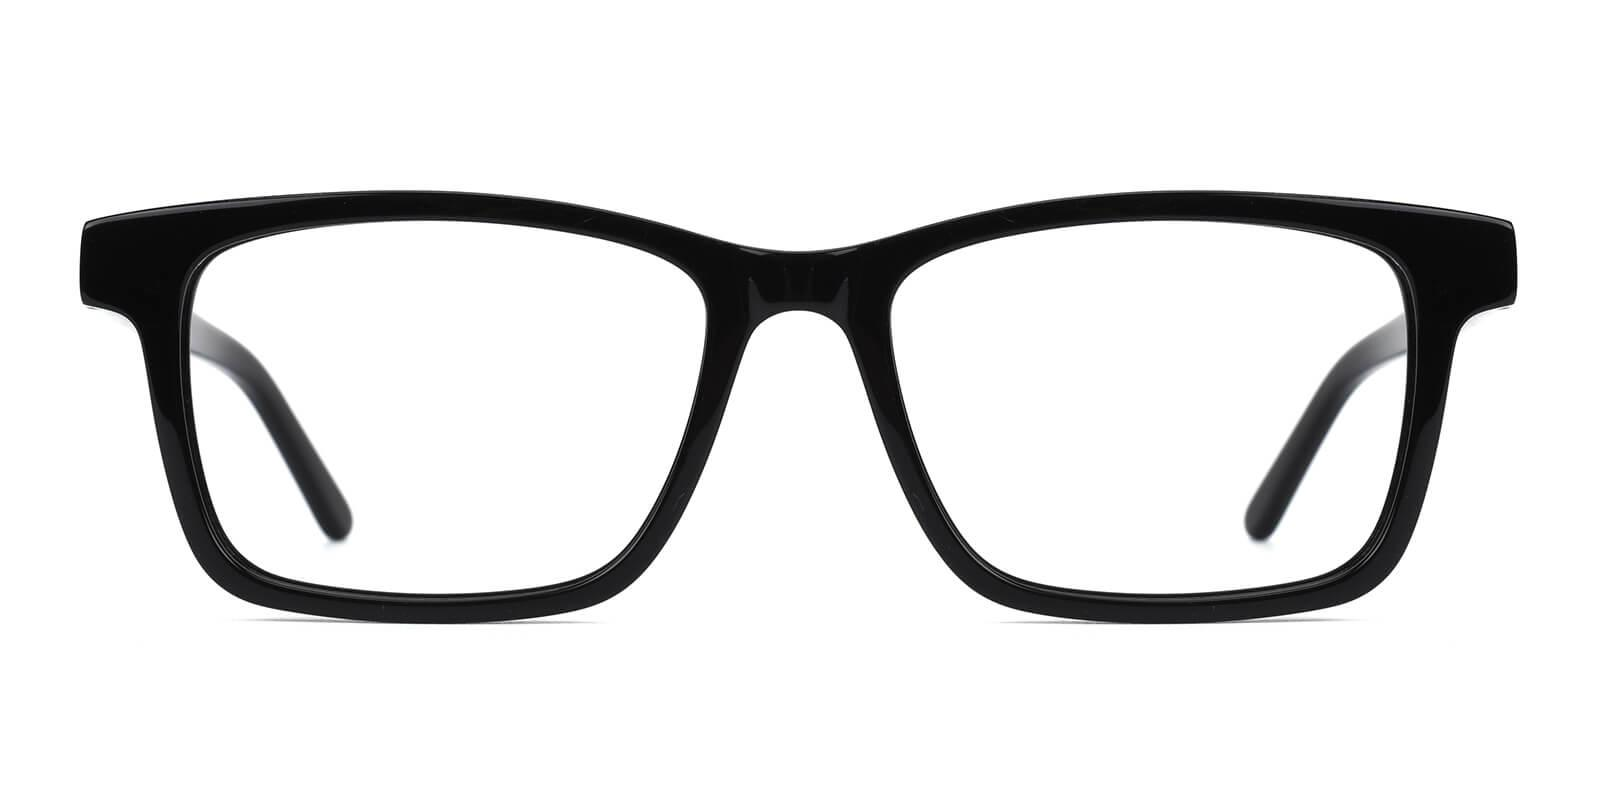 Richard-Black-Square-Acetate-Eyeglasses-additional2